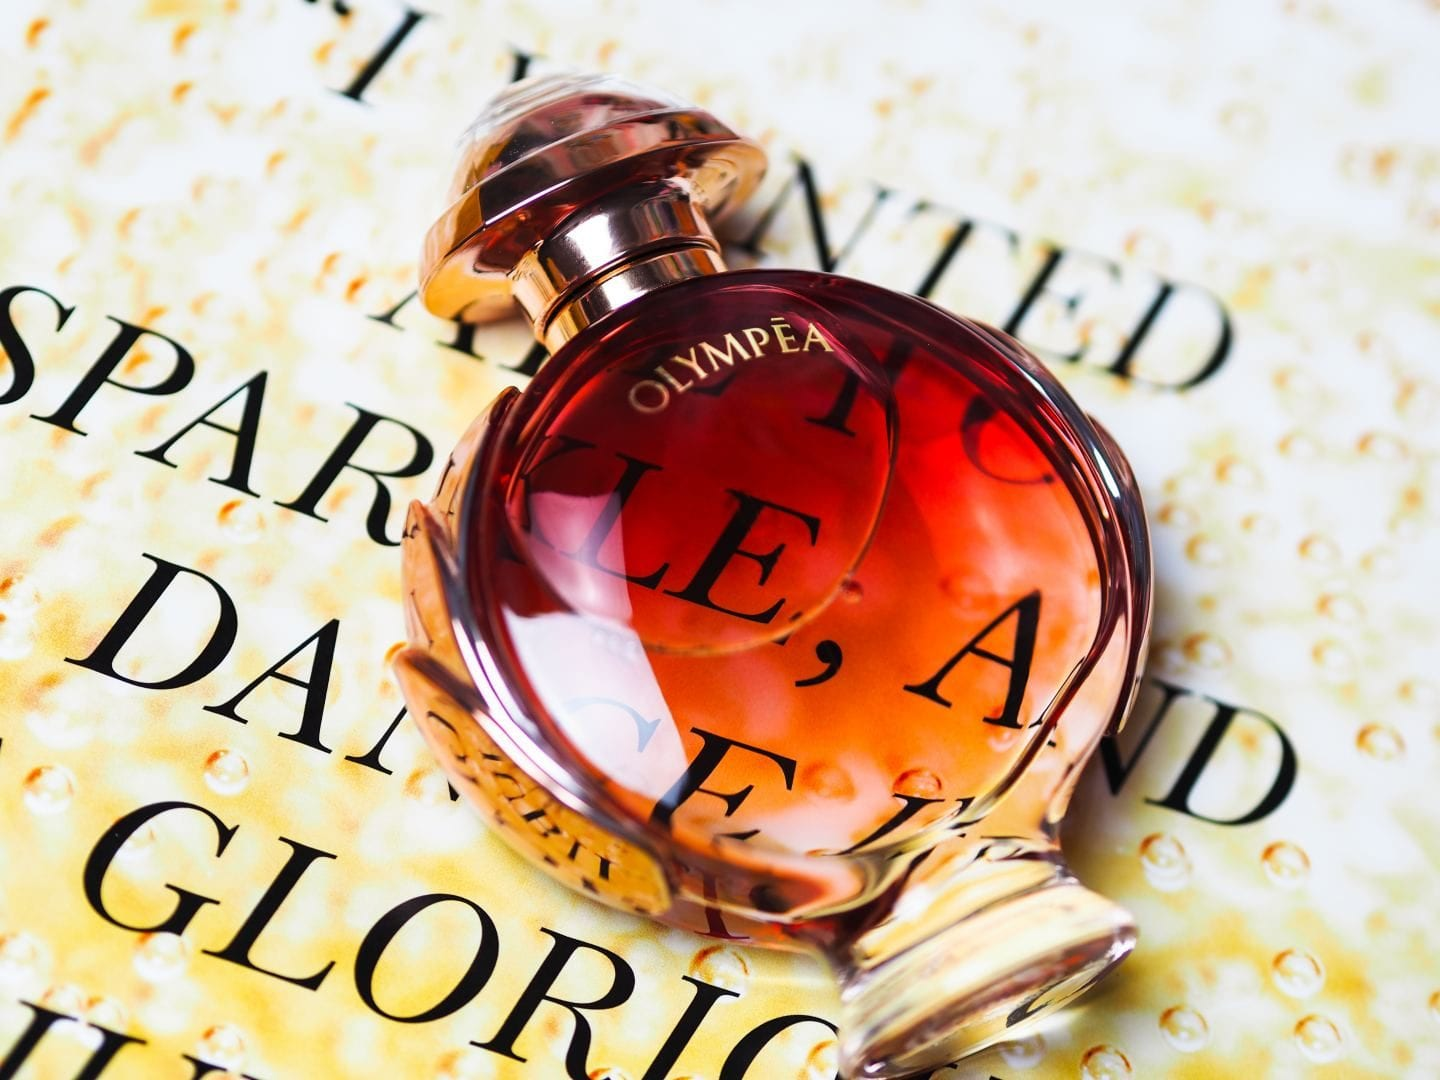 Paco Rabanne 'Olympea Legend'